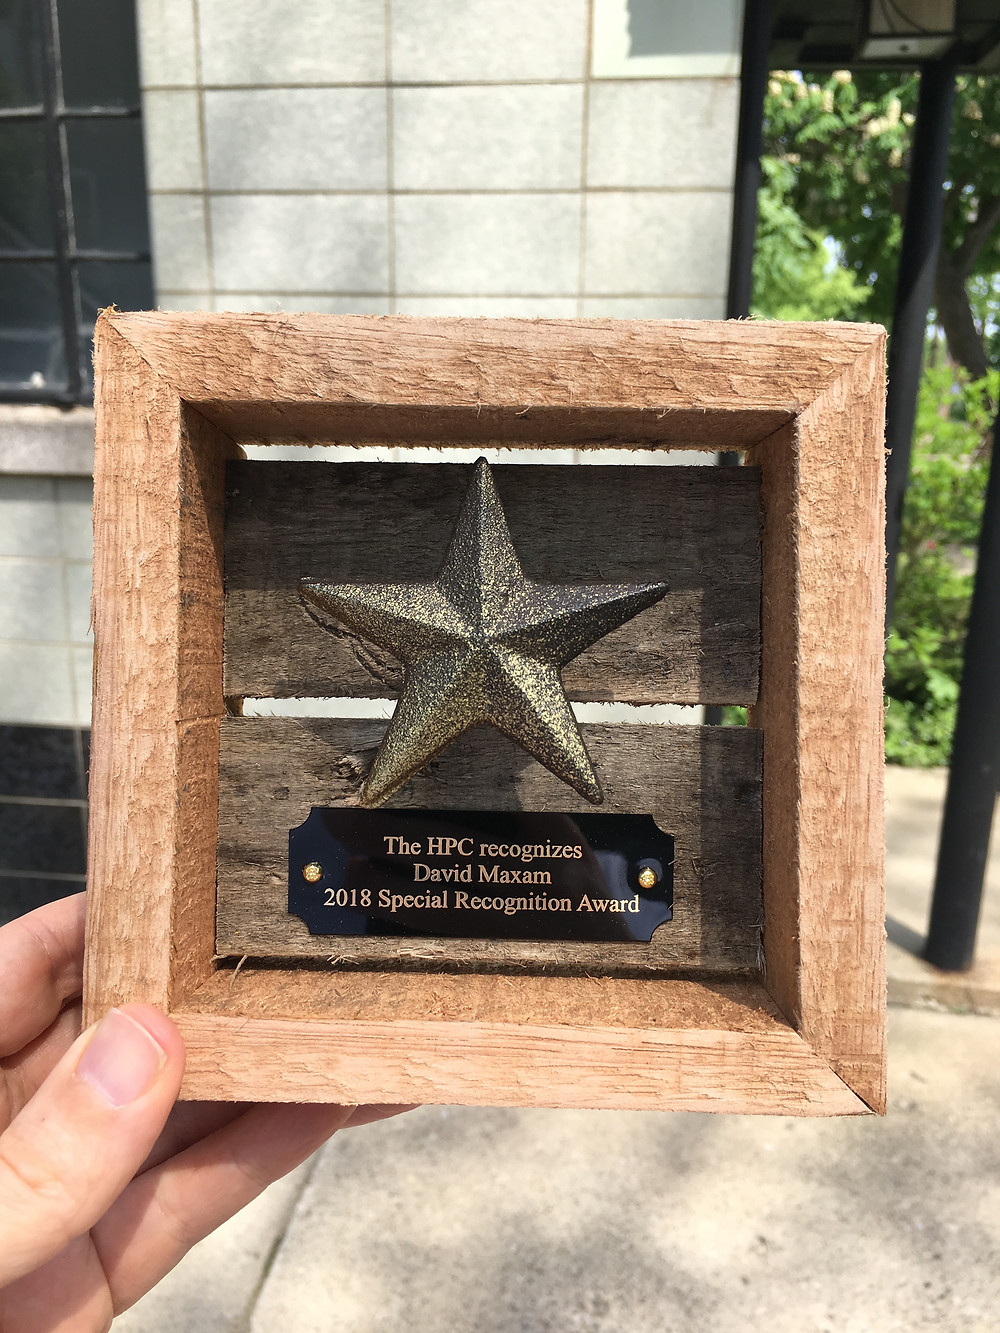 Thanks to the City of Grand Rapids Historic Preservation Commission for the award.